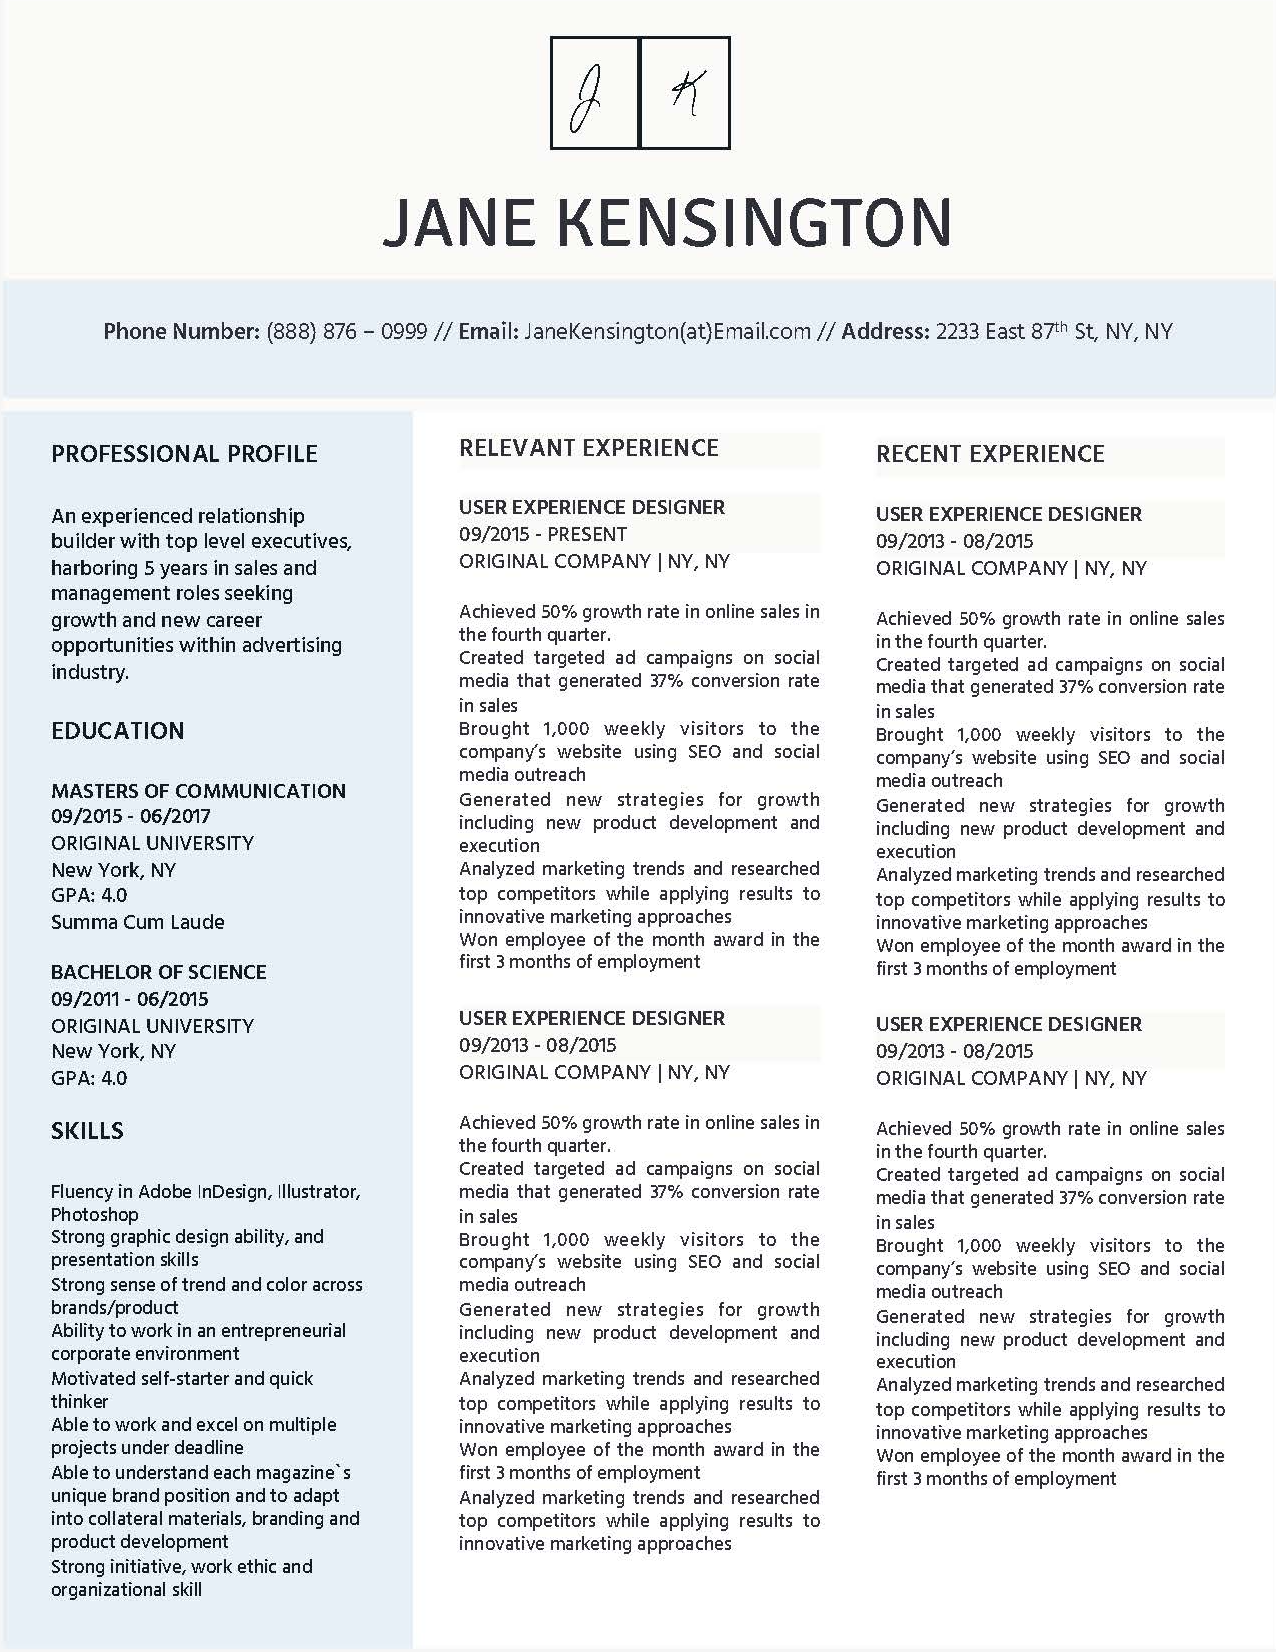 Jane Kensington - Downloadable Resume + Cover Template and Cover Letter Template for Microsoft Word and Apple Pages. This cover letter template is perfect for anyone in the fashion field. The template's design is a modern, unique, colorful, and professional. WE SWEAT THE DETAILS, SO YOU DON'T HAVE TO Stand Out Shop resume templates for Microsoft Word and Apple Pages will help you design a modern and professional resume in minutes! Simply download, open in Microsoft Word or Apple Pages, and input your resume's information. Increase your chances of landing your dream job with a job winning, modern, simple, and scannable resume template for Microsoft Word and Apple Pages. Creating a resume shouldn't suck Simply download a resume template from Stand Out Shop, enter your information in Microsoft Word or Apple Pages and get a beautifully formatted resume in seconds. Create a unique and vivid resume in minutes. Make an impressive resume. Customize your own layout in Microsoft Word or Apple Pages and introduce yourself in an impressive way. You can download your resume at any time. Stand out from other job seekers with a beautiful professional design.